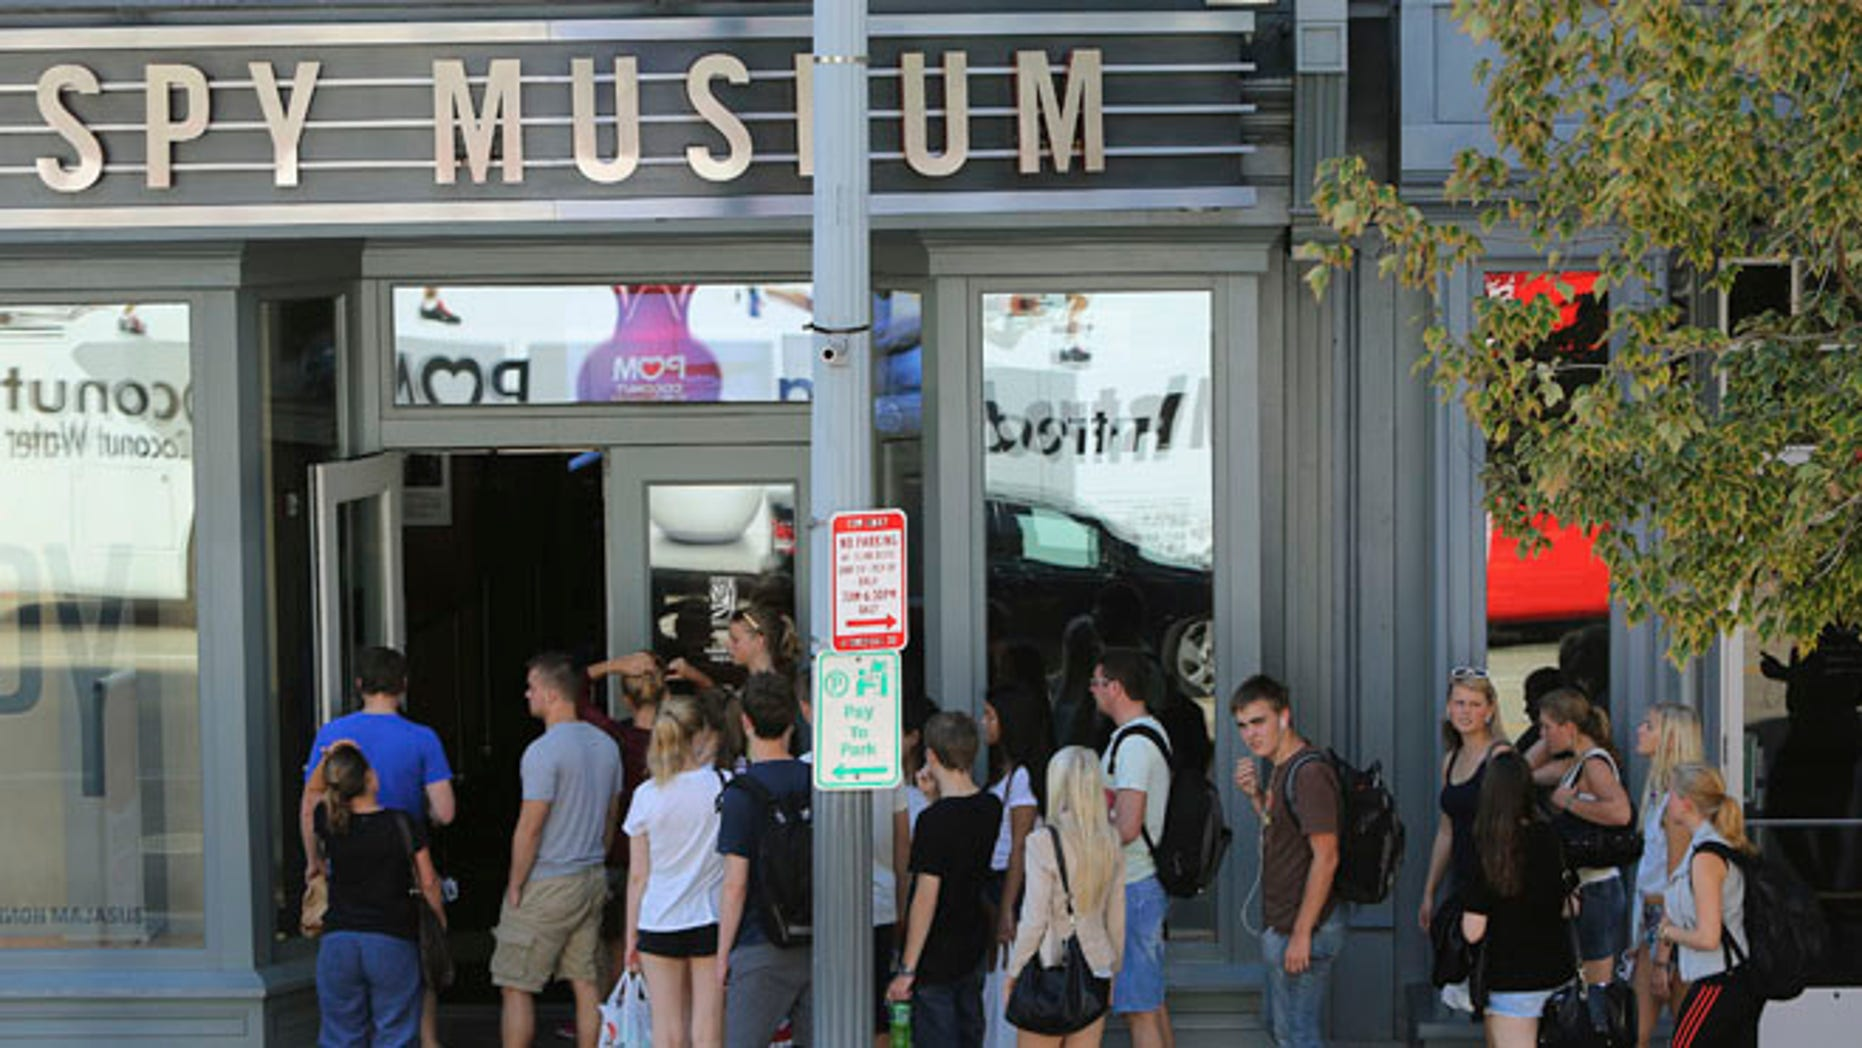 FILE: Oct. 2, 2013: Tourists outside the International Spy Museum, which is open for business and not U.S. government-affiliated, in Washington, D.C.